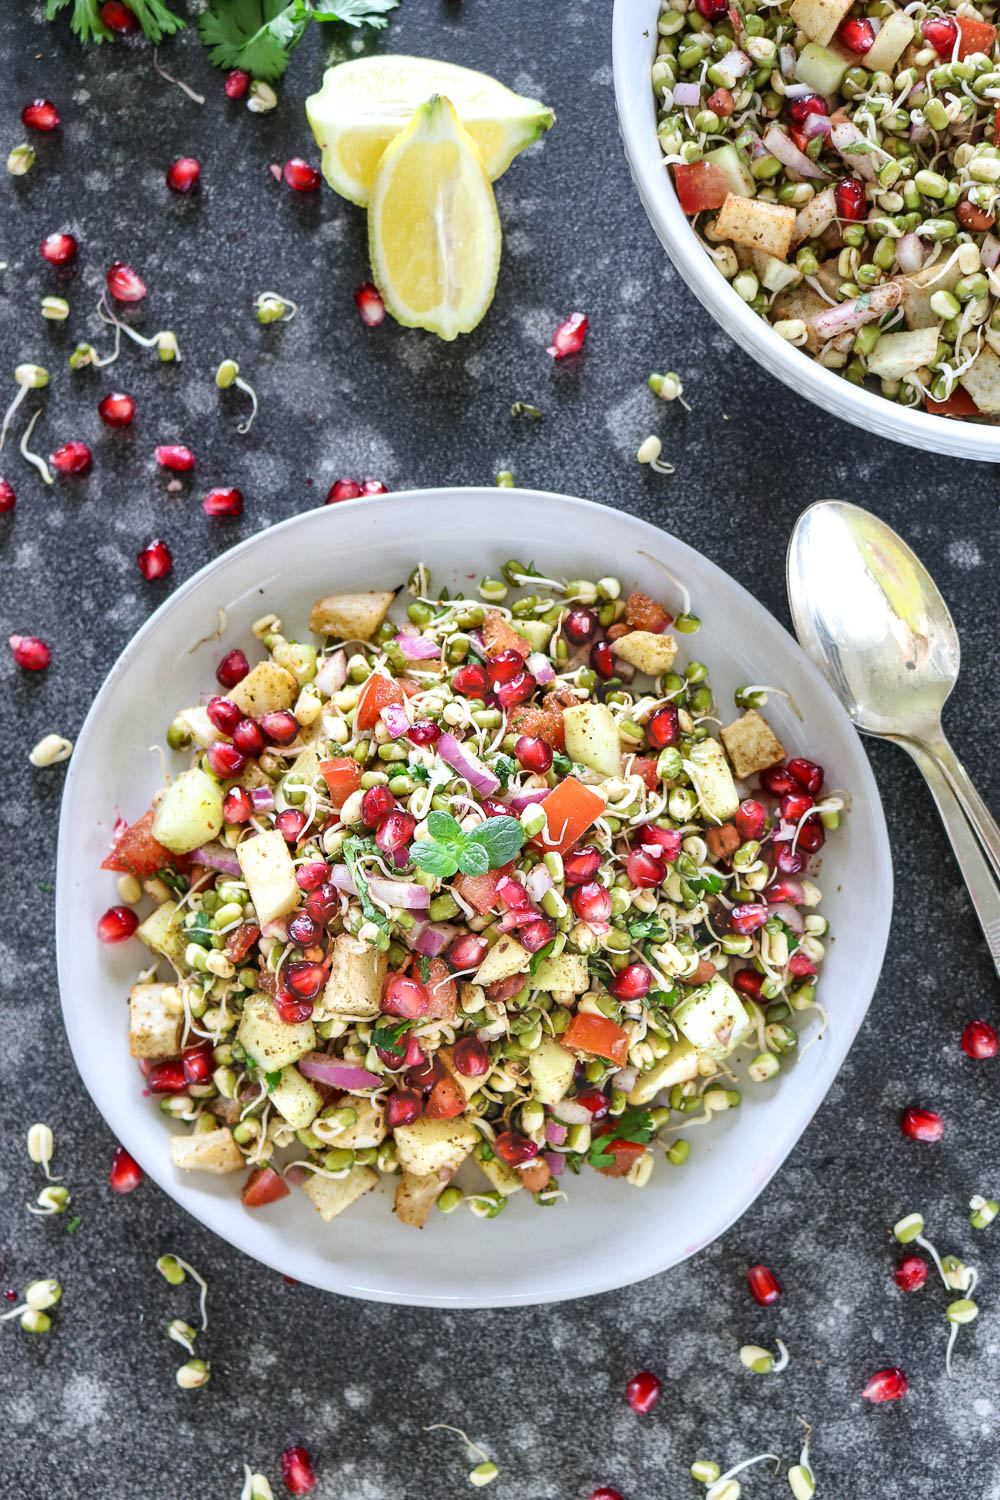 Healthy Sprout Salad (How to make Mung Dal Sprouts Salad)